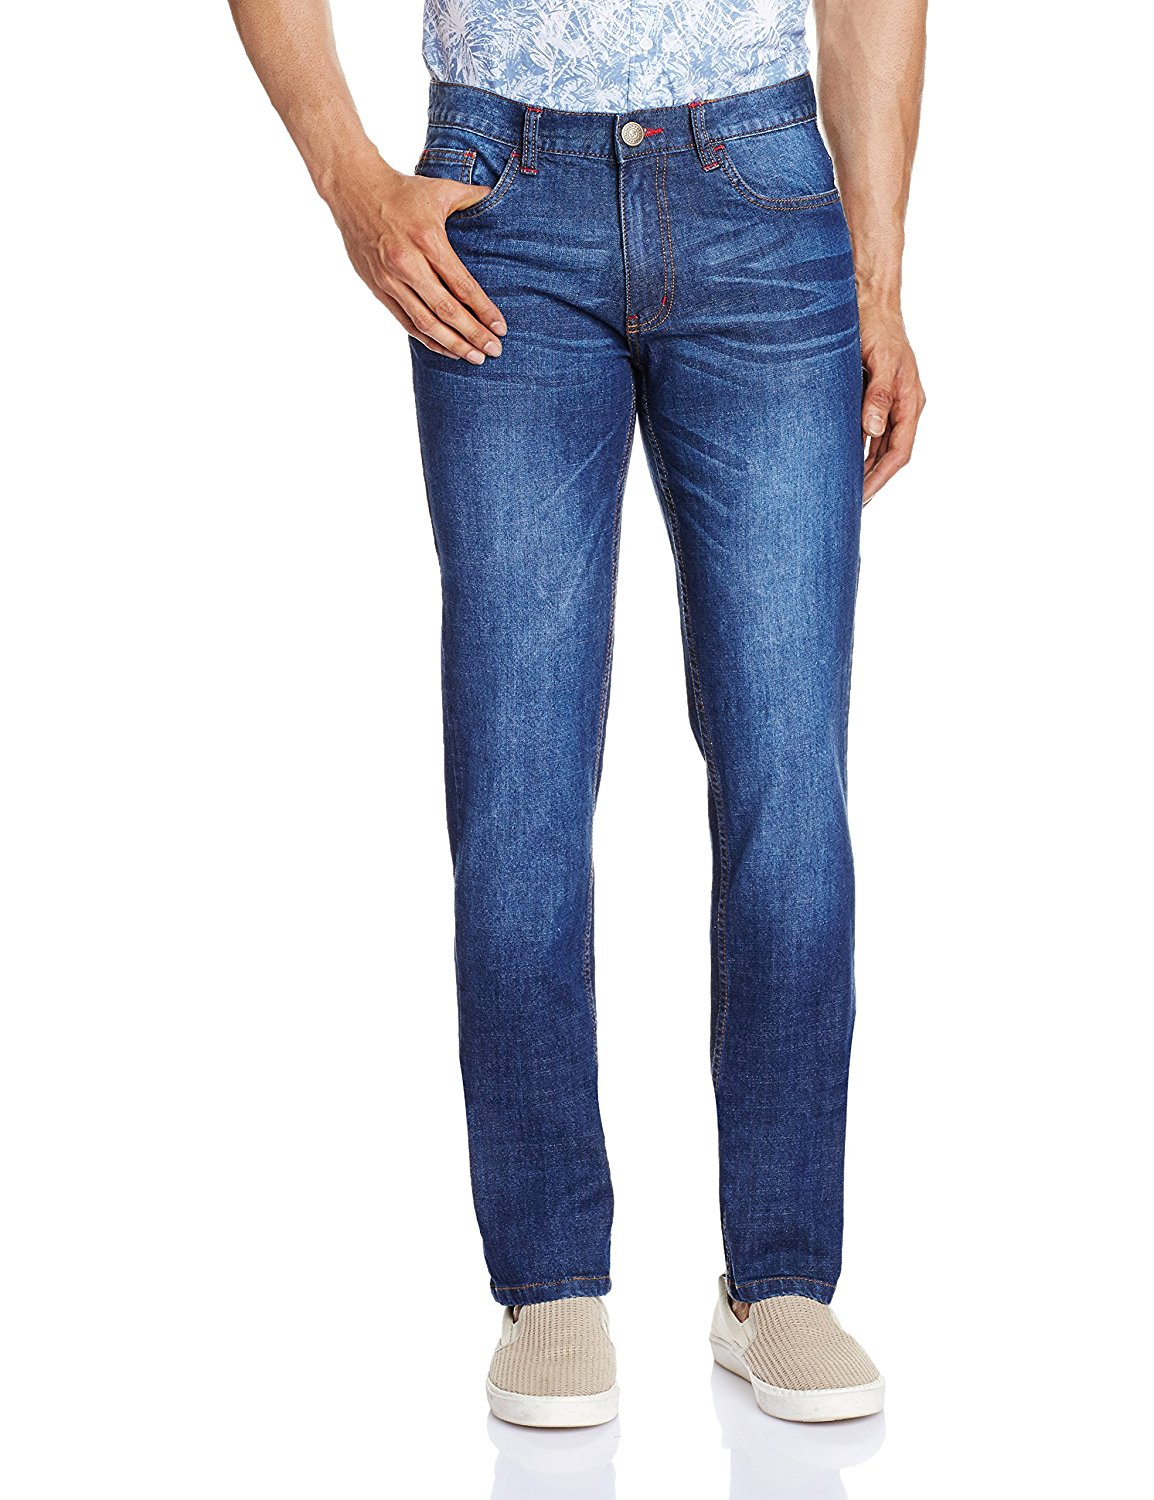 Amazon - Buy Newport Men's Slim Fit Jeans from Rs.299